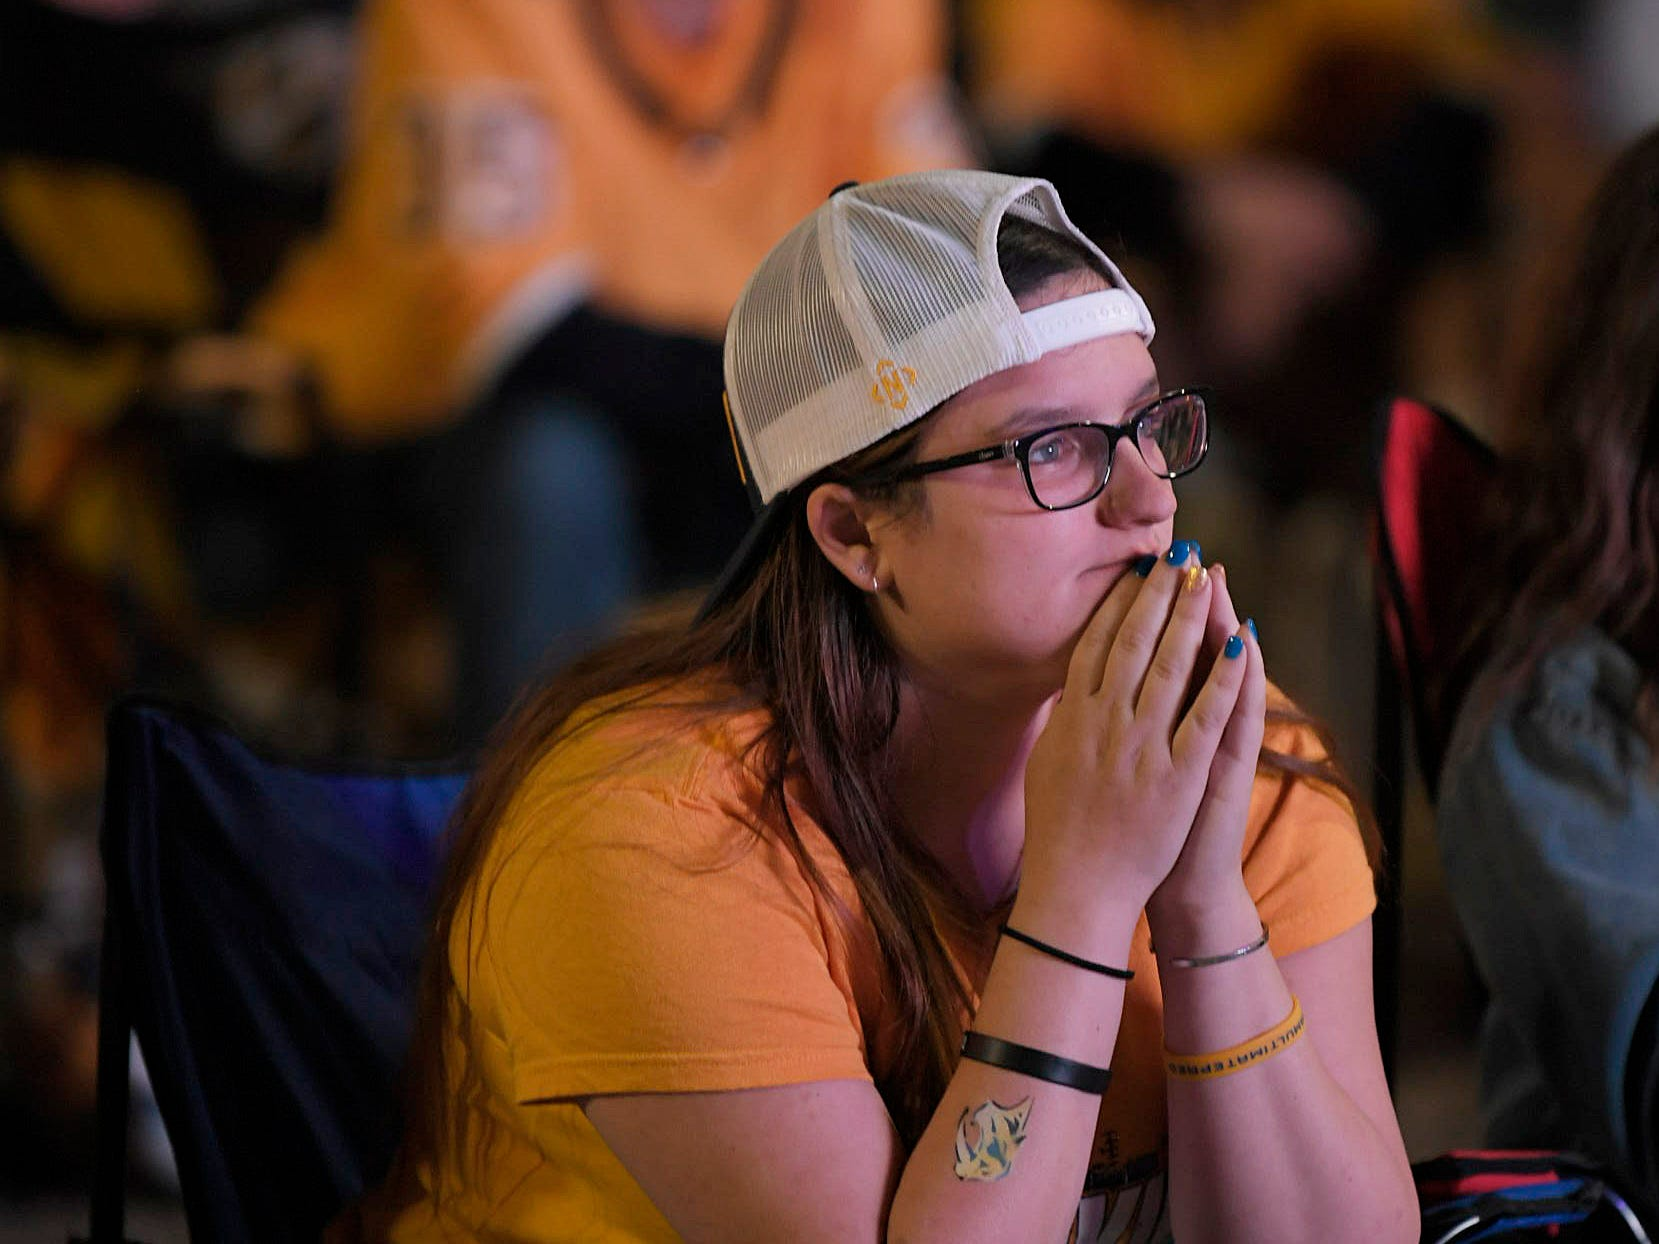 Predators fan Nicole Morosco watches the game at Preds Party in the Park at Walk of Fame Park in Nashville on Wednesday, April 10, 2019.